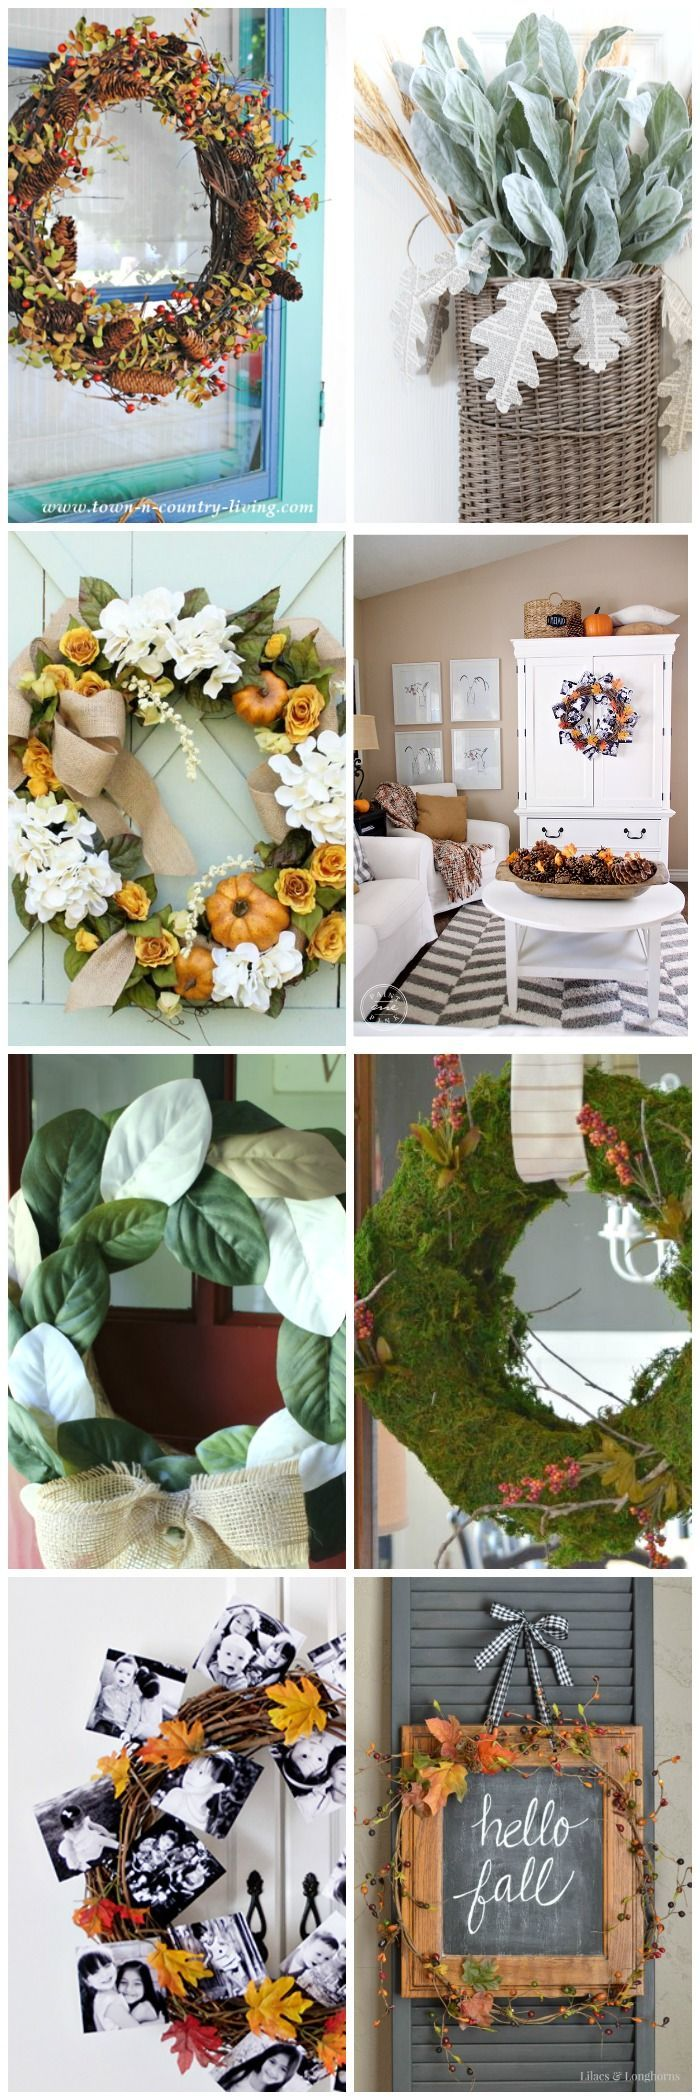 Diy kitchen decor crafts - 7 Fabulous Fall Wreaths To Diy